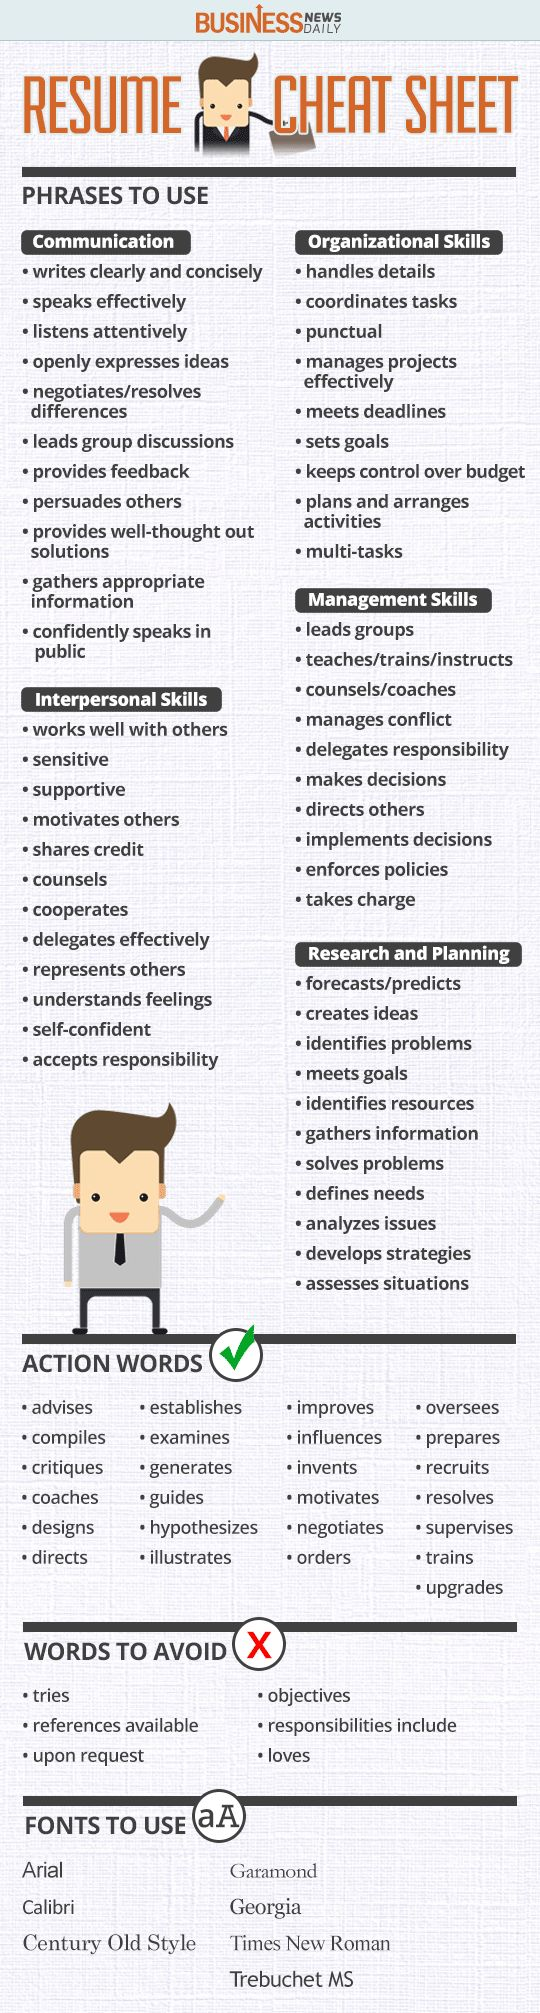 Opposenewapstandardsus  Unusual  Ideas About Resume On Pinterest  Cv Format Resume Cv And  With Likable Resume Cheat Sheet Infographic Andrews Almost Done With A Complete Unit On Employment Which With Astonishing College Student Resume For Internship Also Model Resume Template In Addition Resume Jobs And Resume Monster As Well As Sample Resume High School Student Additionally How To Write A Resume For A Job Application From Pinterestcom With Opposenewapstandardsus  Likable  Ideas About Resume On Pinterest  Cv Format Resume Cv And  With Astonishing Resume Cheat Sheet Infographic Andrews Almost Done With A Complete Unit On Employment Which And Unusual College Student Resume For Internship Also Model Resume Template In Addition Resume Jobs From Pinterestcom